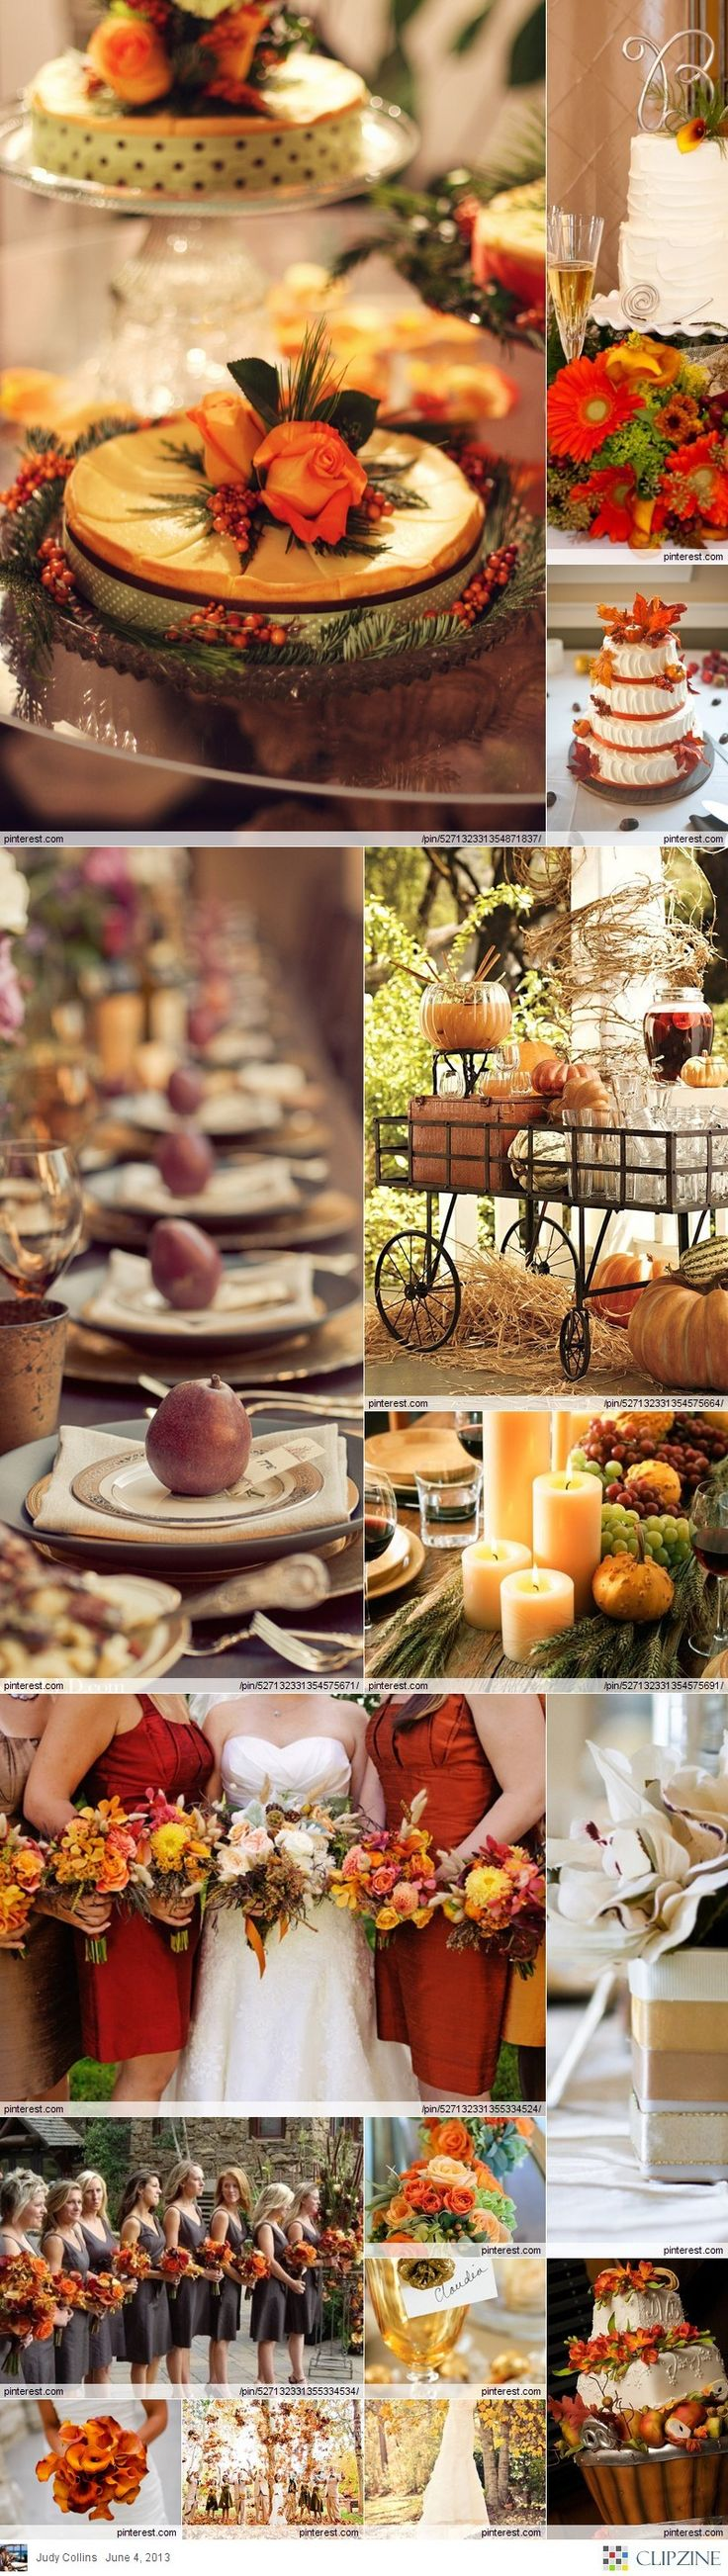 I have always wanted an autumn wedding. Maybe on our 20th anniversary in 4.5 years.